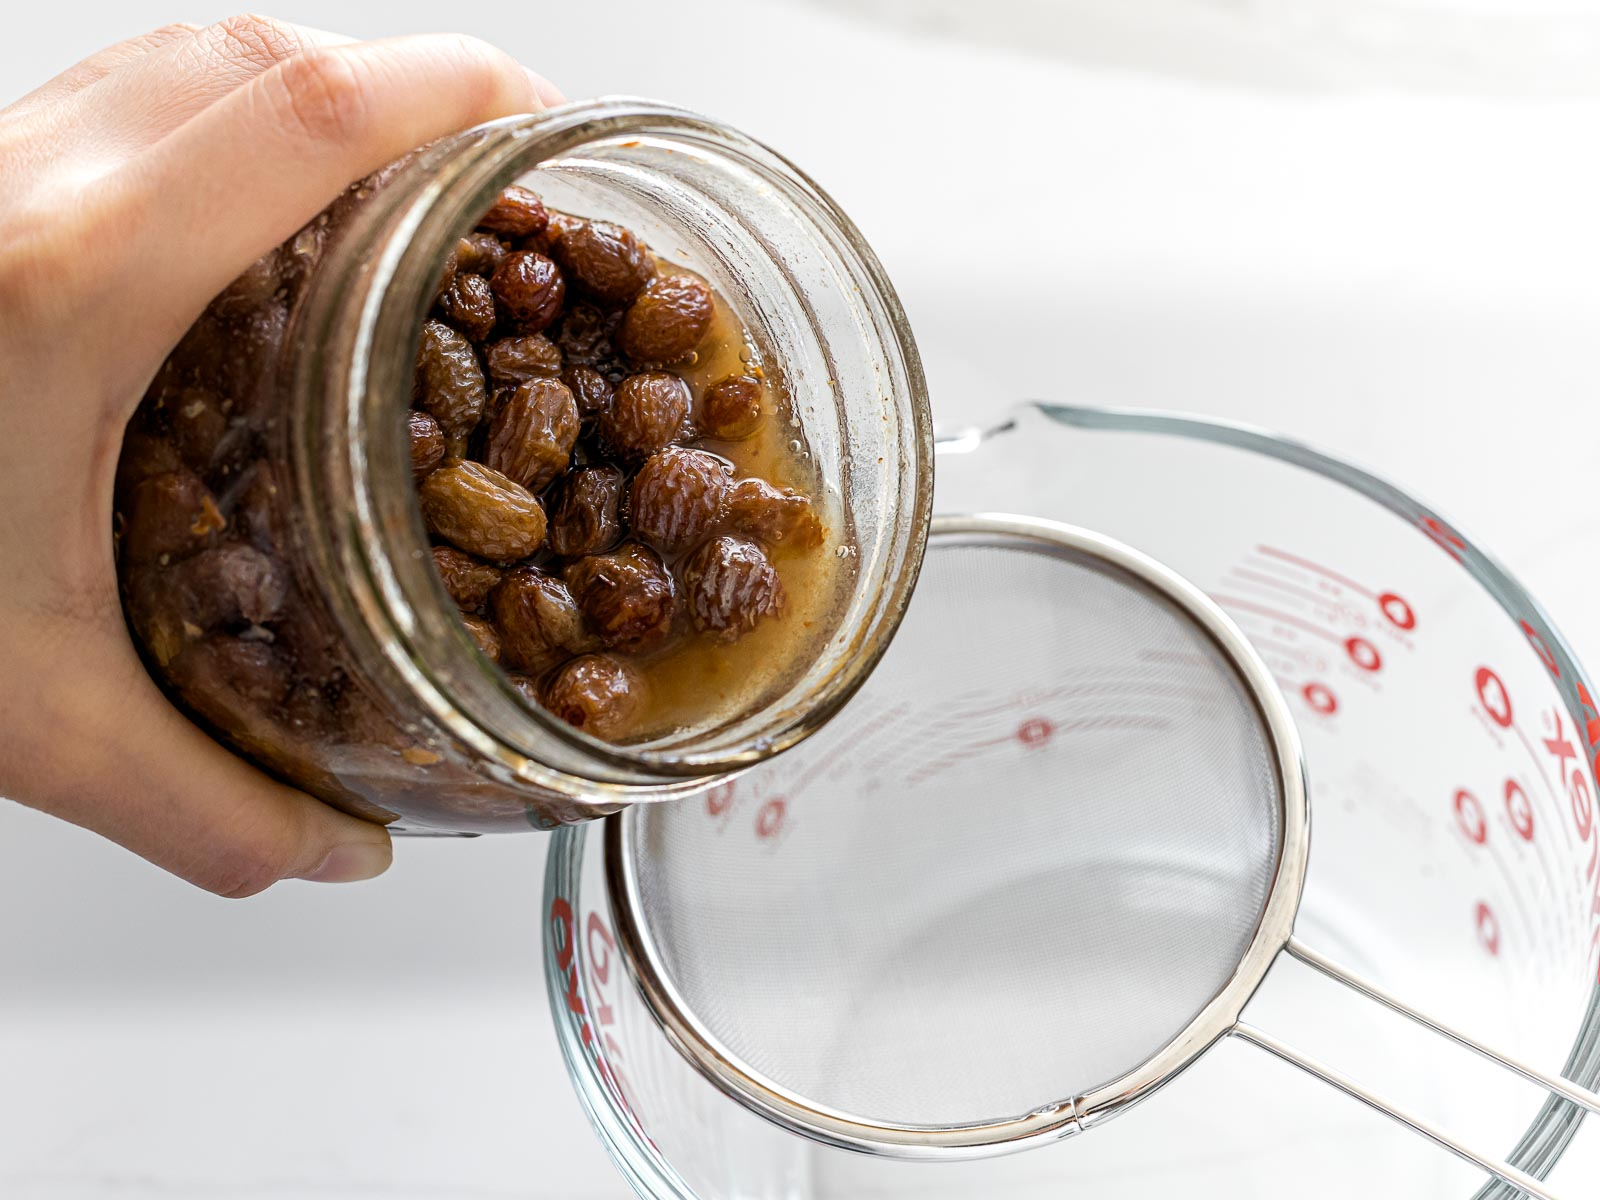 raisin yeast water being poured into a strainer